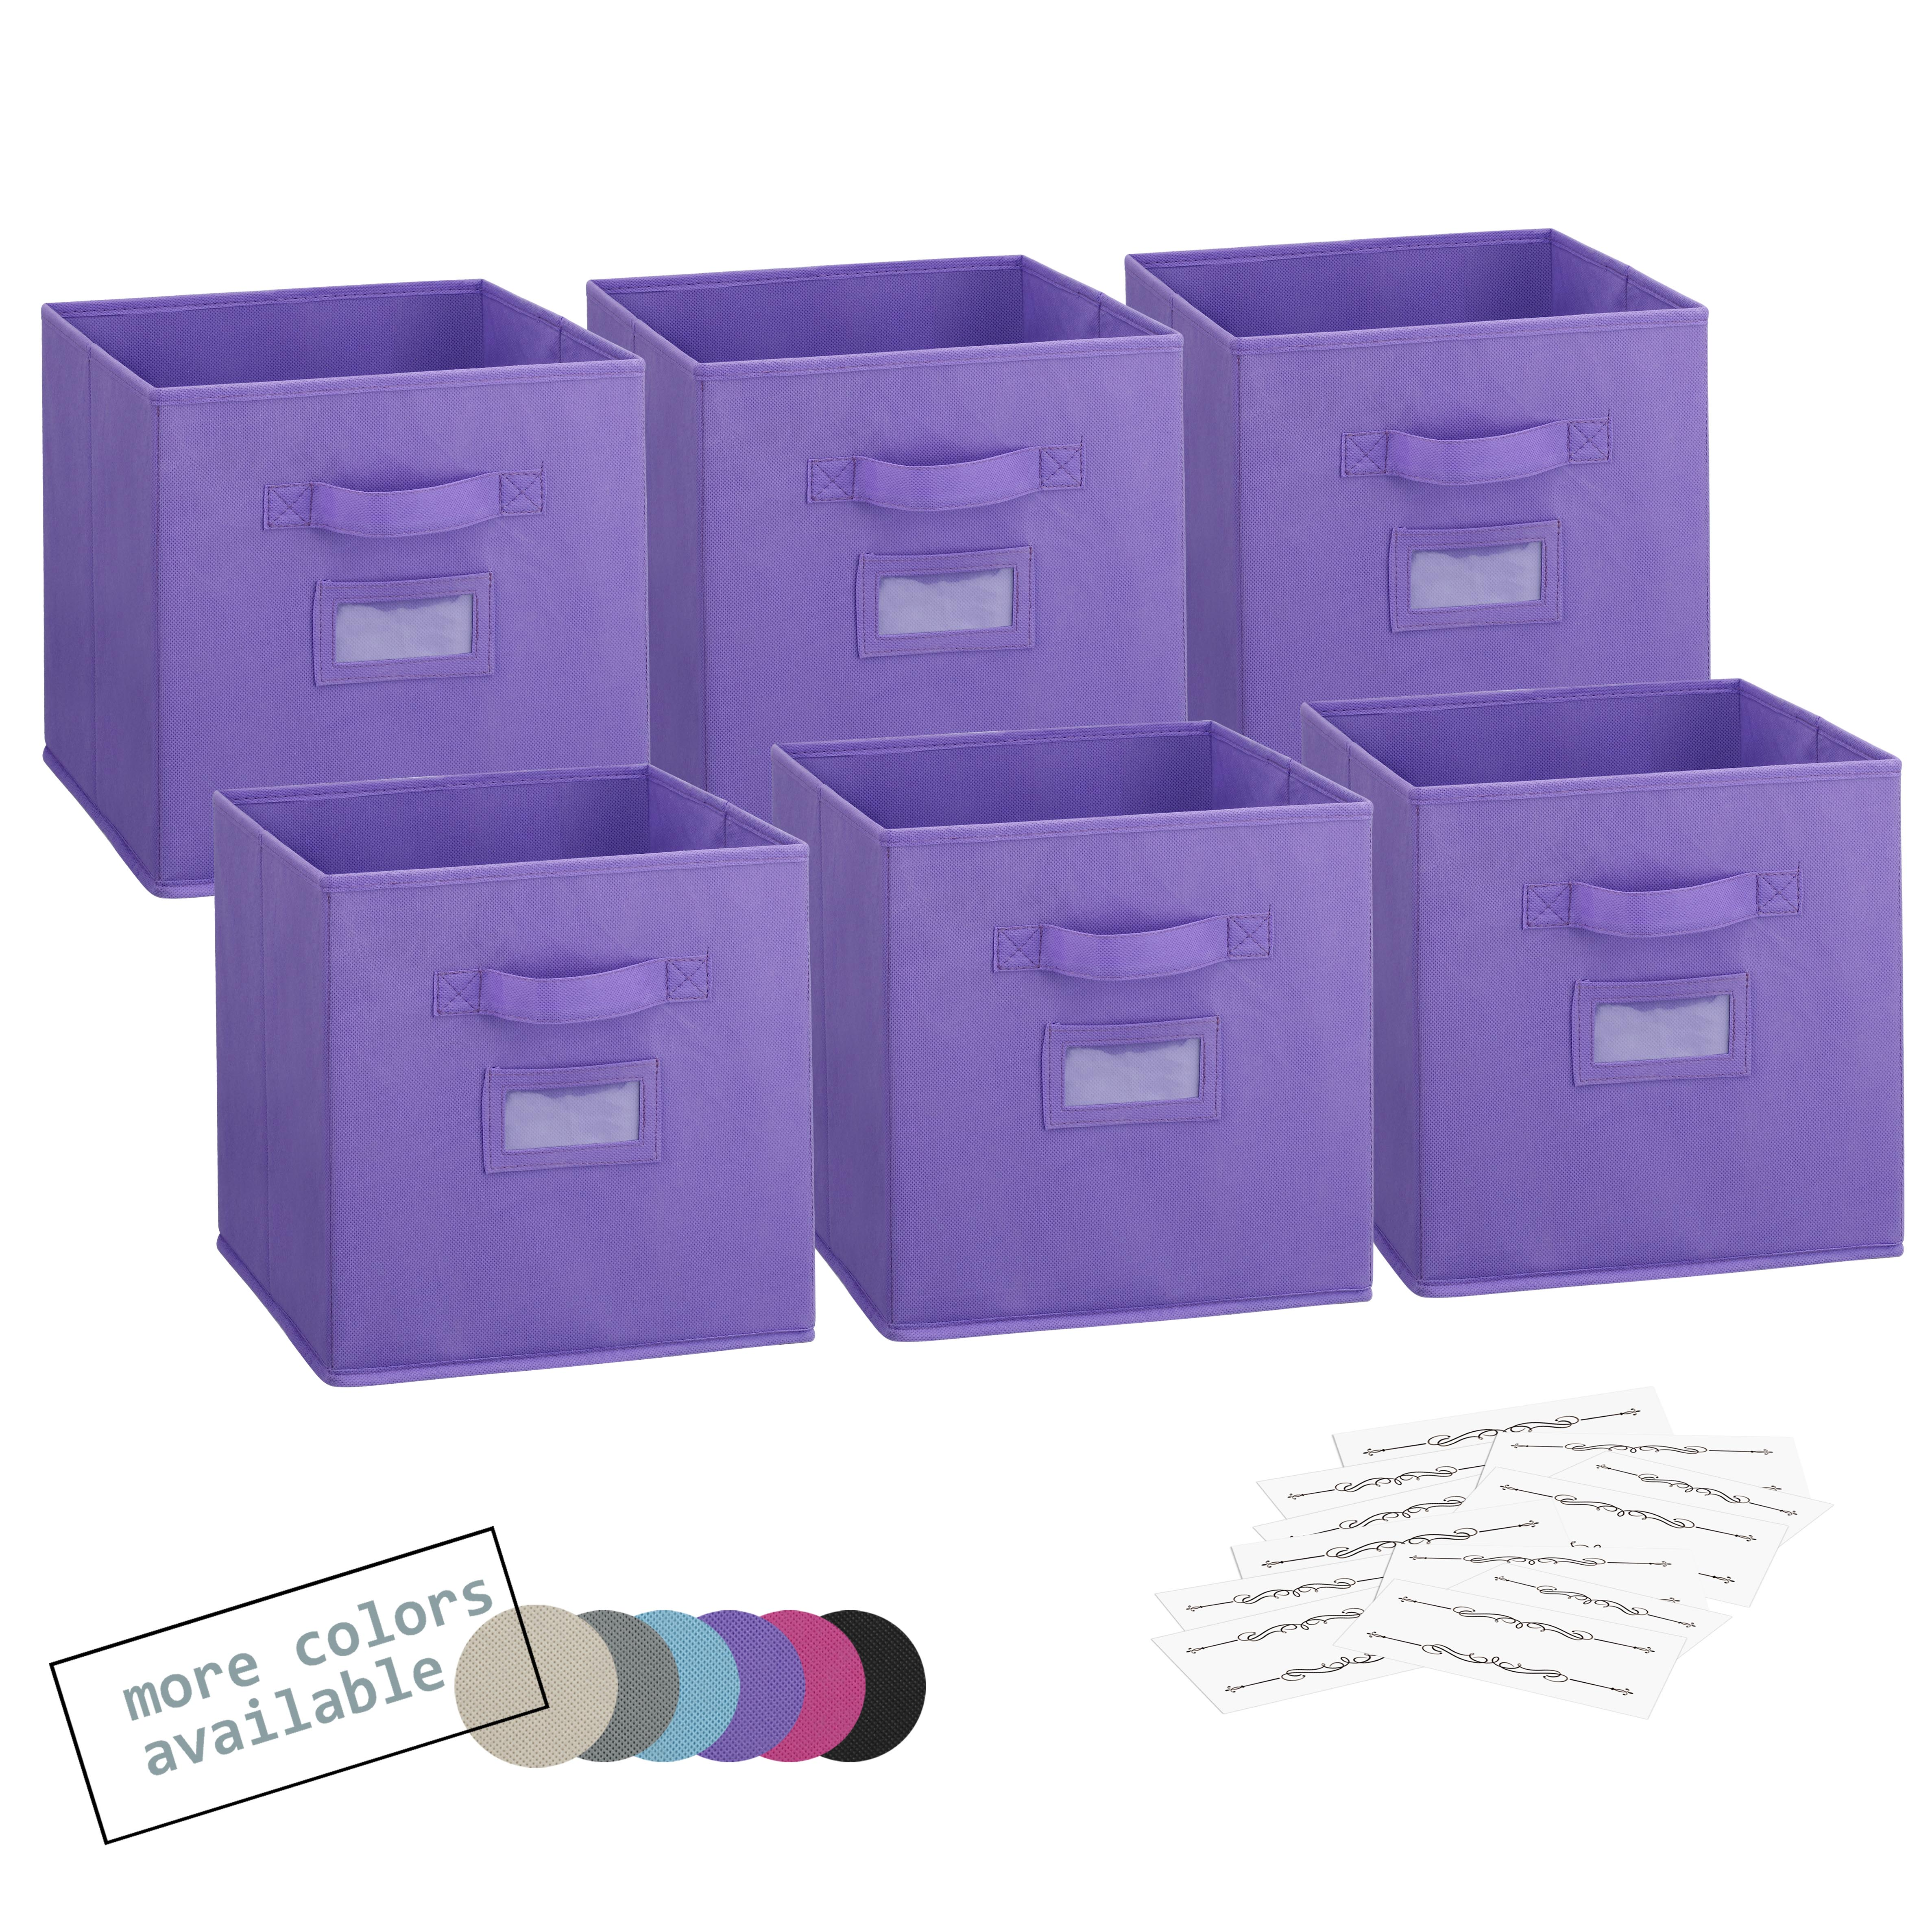 Foldable fabric storage cubes beige (1)